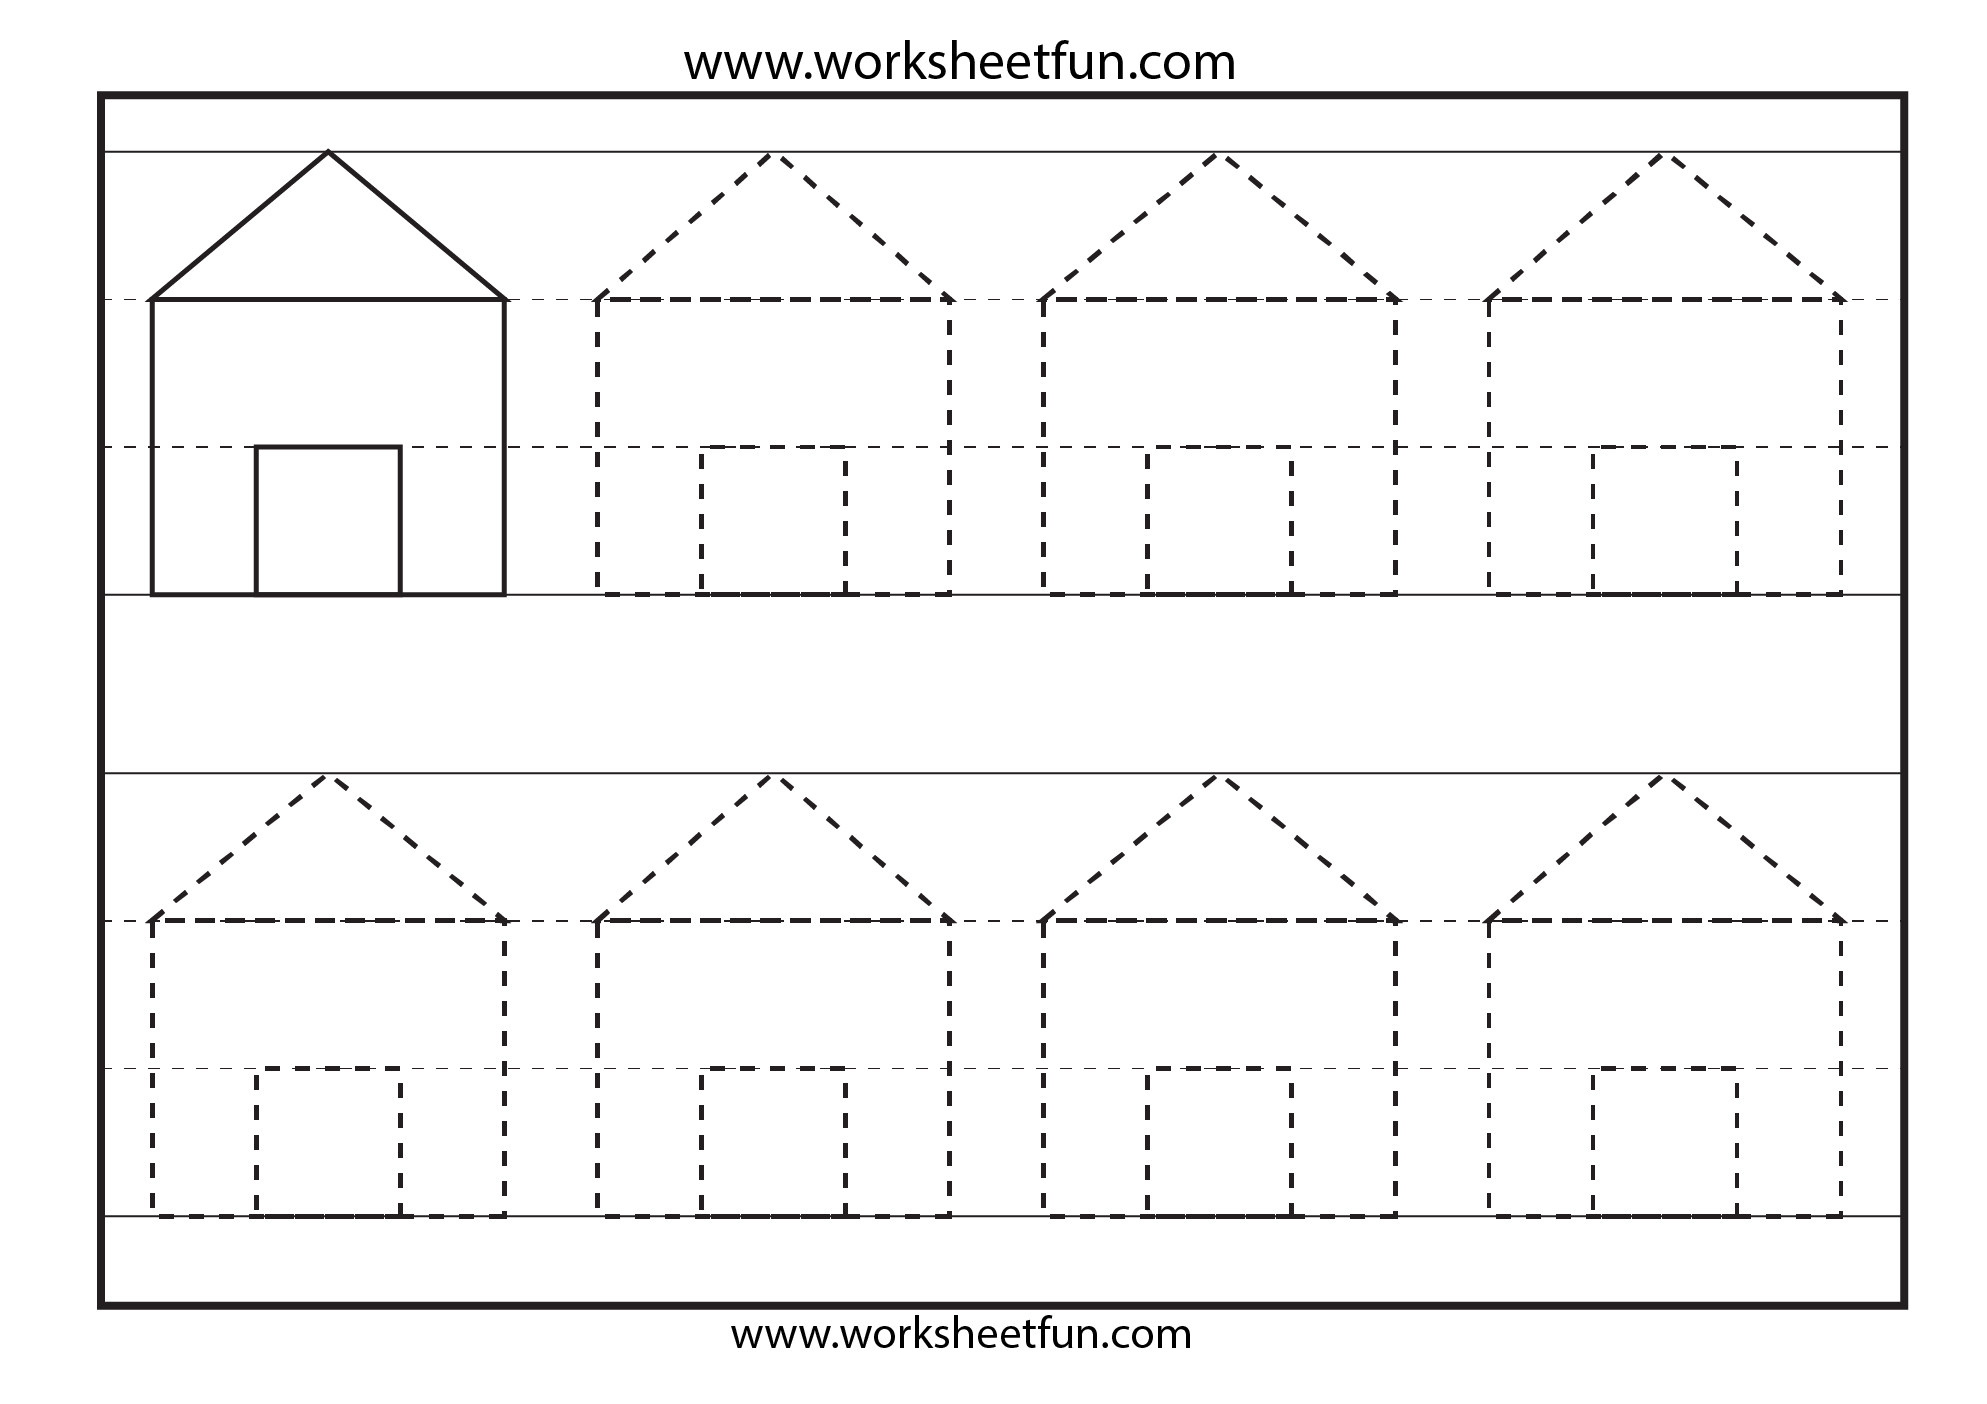 6 Worksheets / FREE Printable